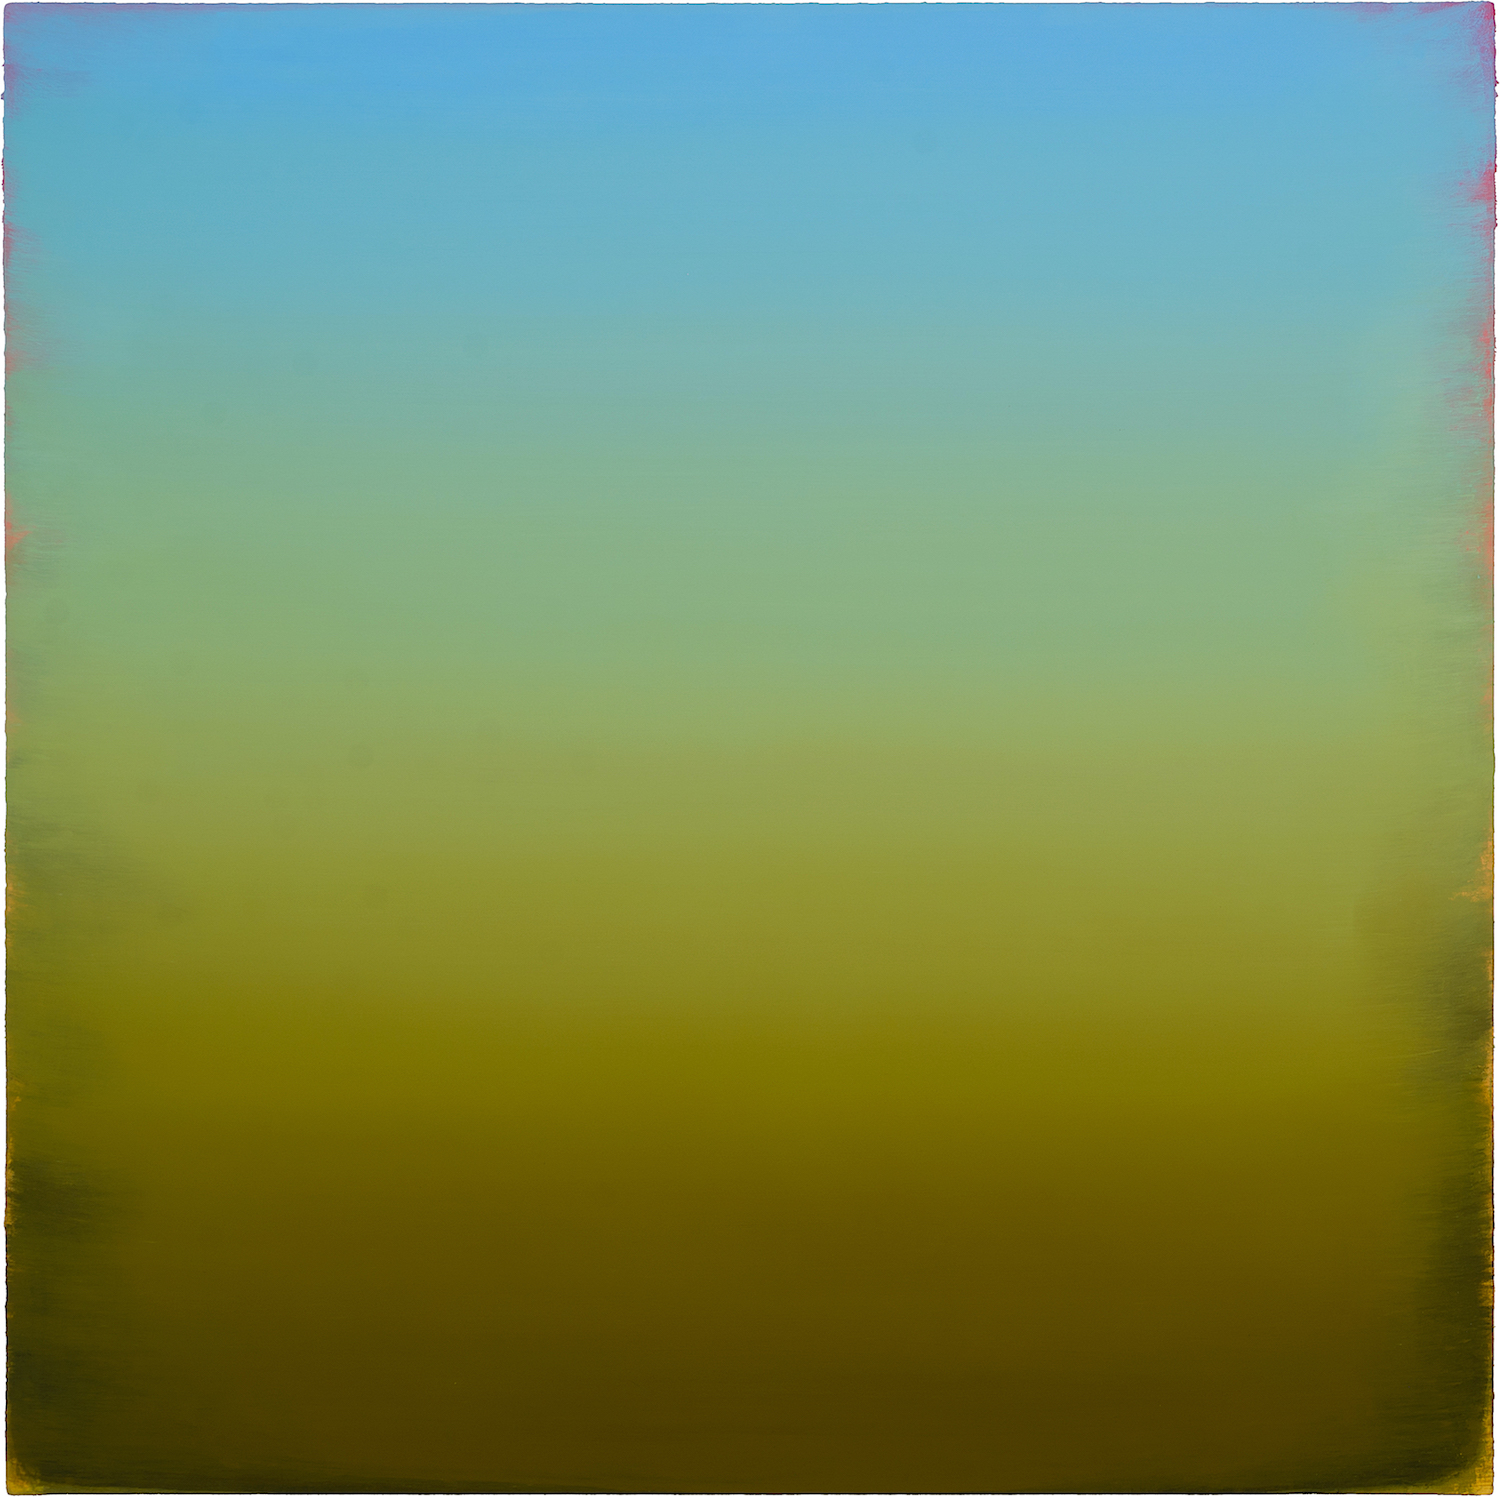 Gradation Skyblue Large. Neil Callander. Jackson's Painting Prize.